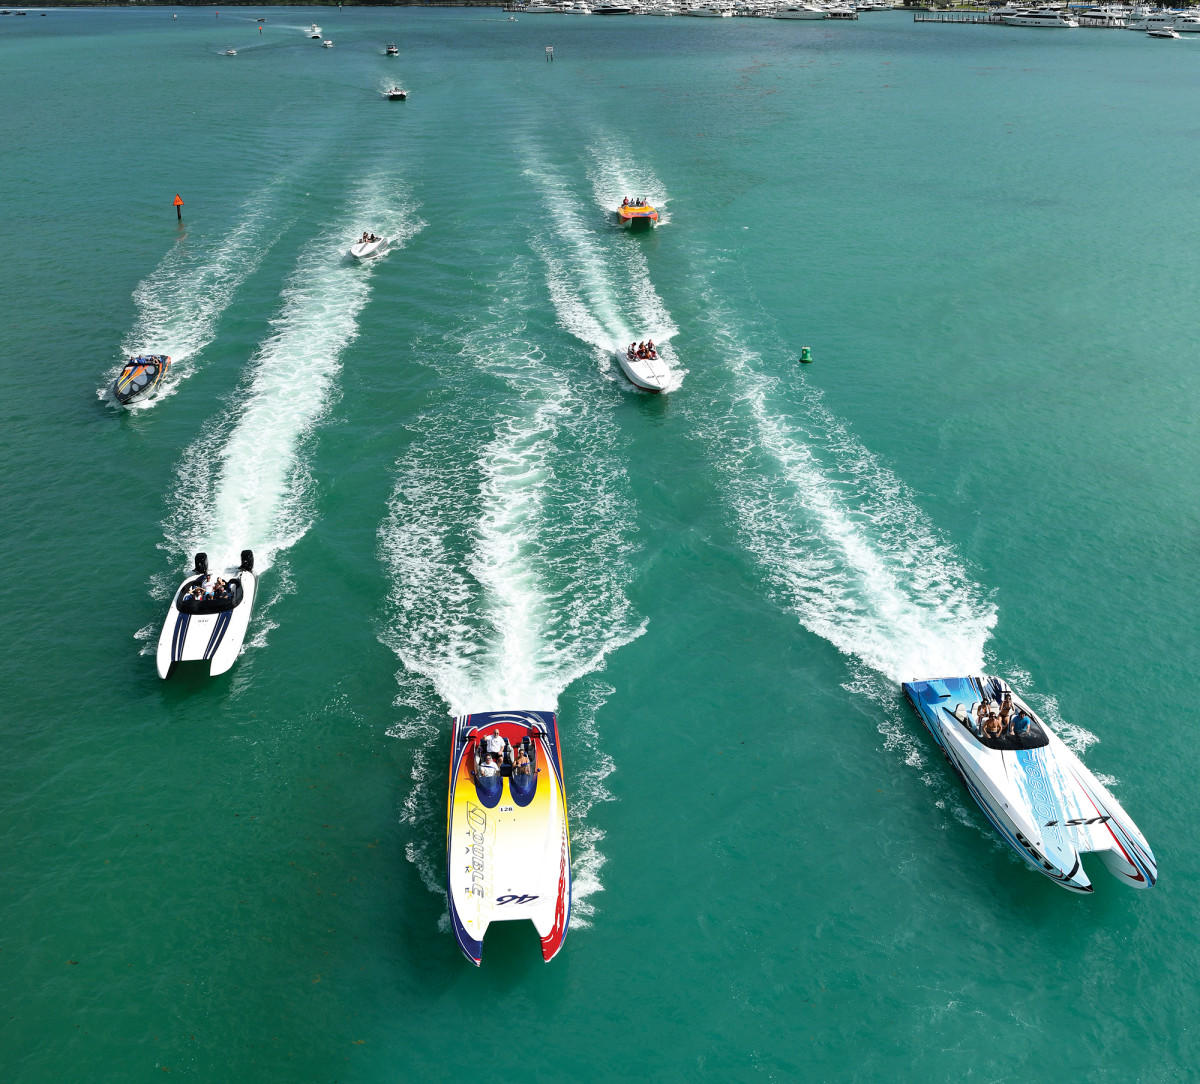 The FPC fleet on the move. No-wake zone? No problem.